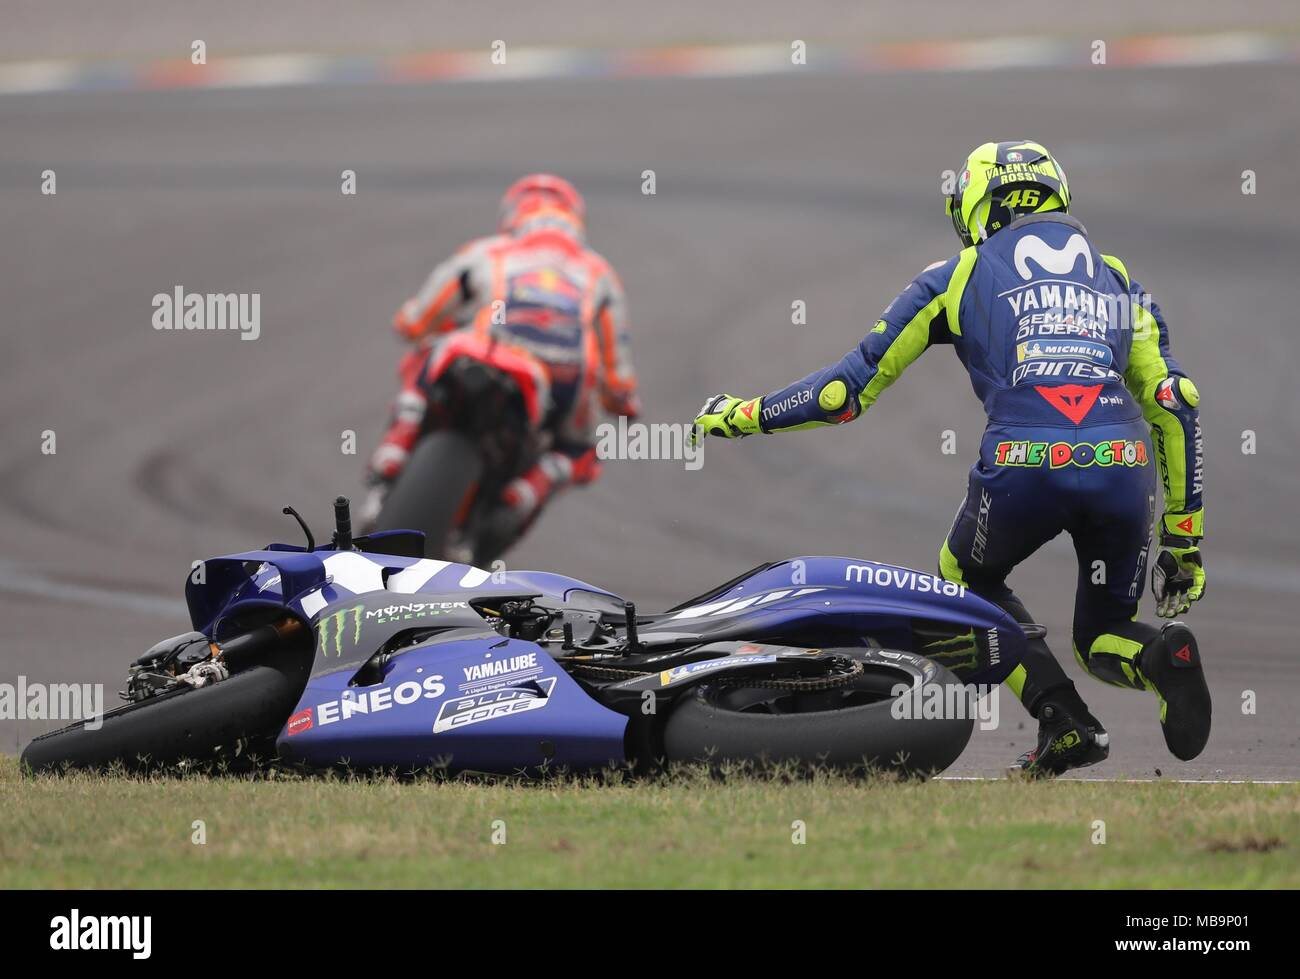 Page 2 Valentino Rossi High Resolution Stock Photography And Images Alamy